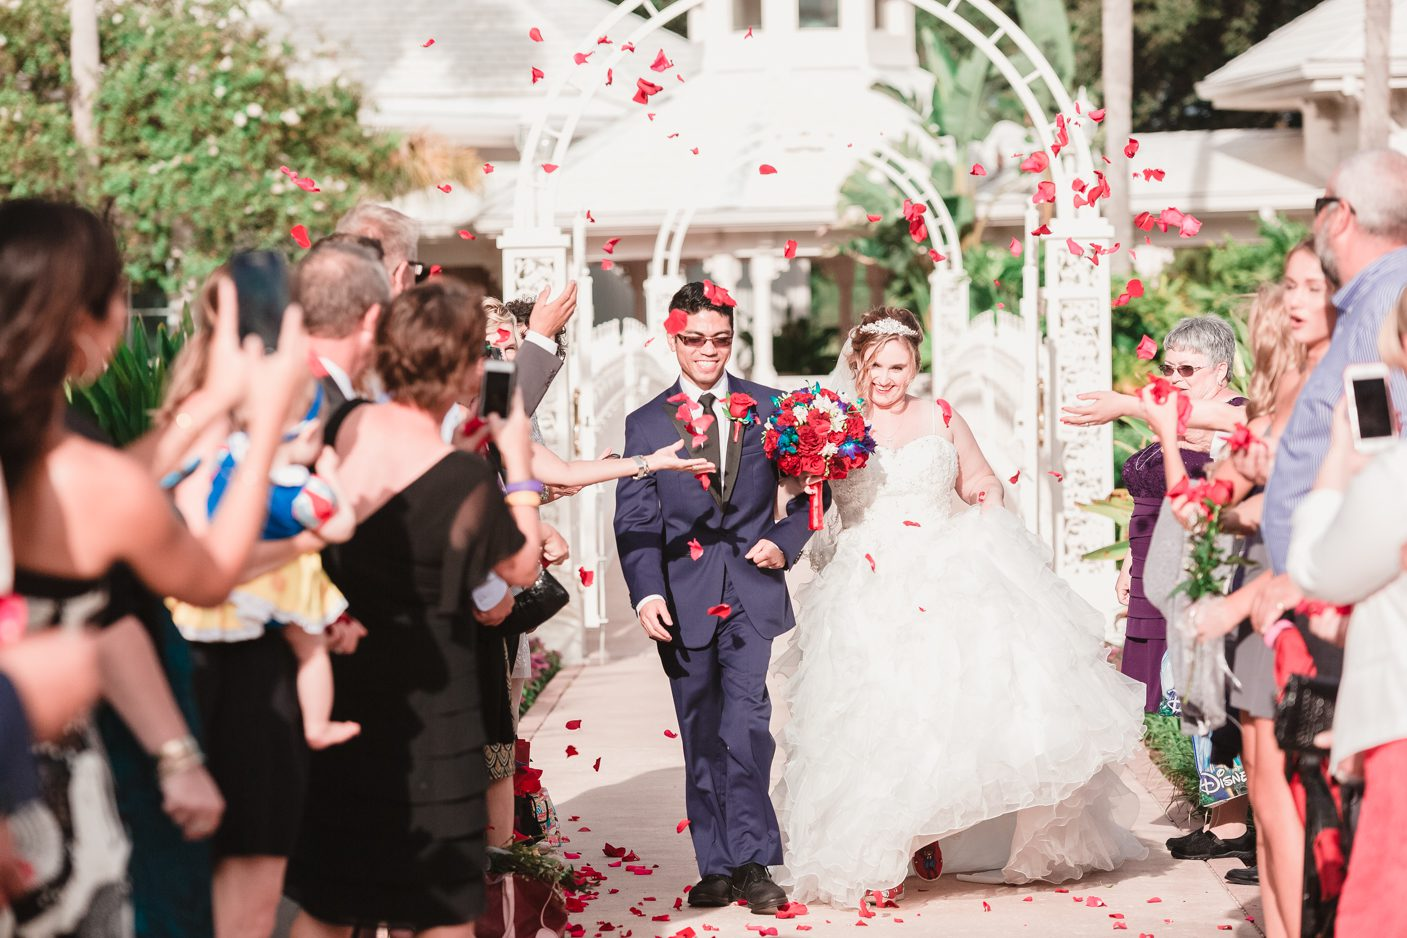 Grand exit with rose petals at Disney's wedding pavilion by Orlando wedding photographer